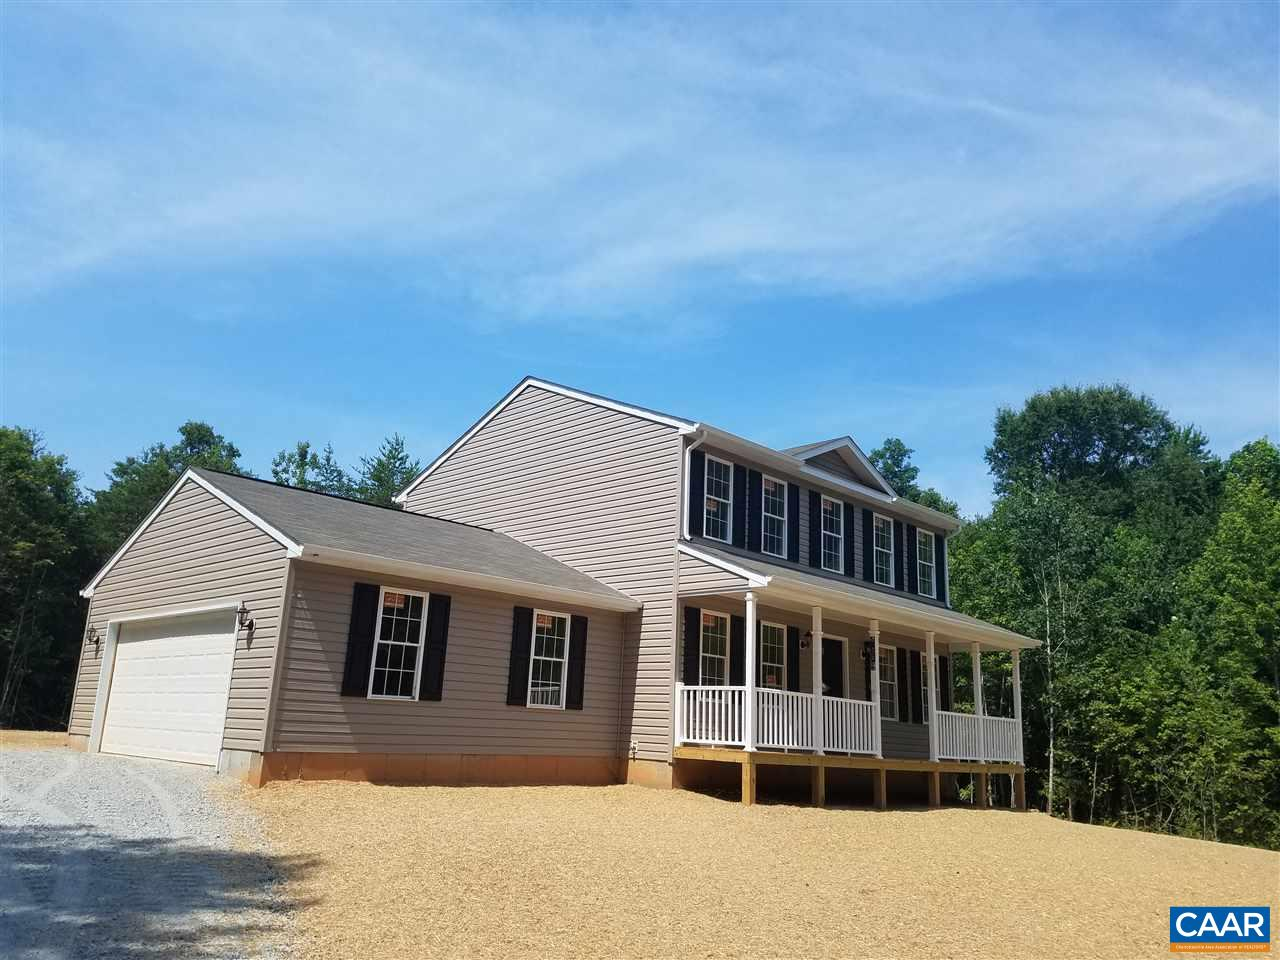 home for sale , MLS #566701, 40 Gladys Ln